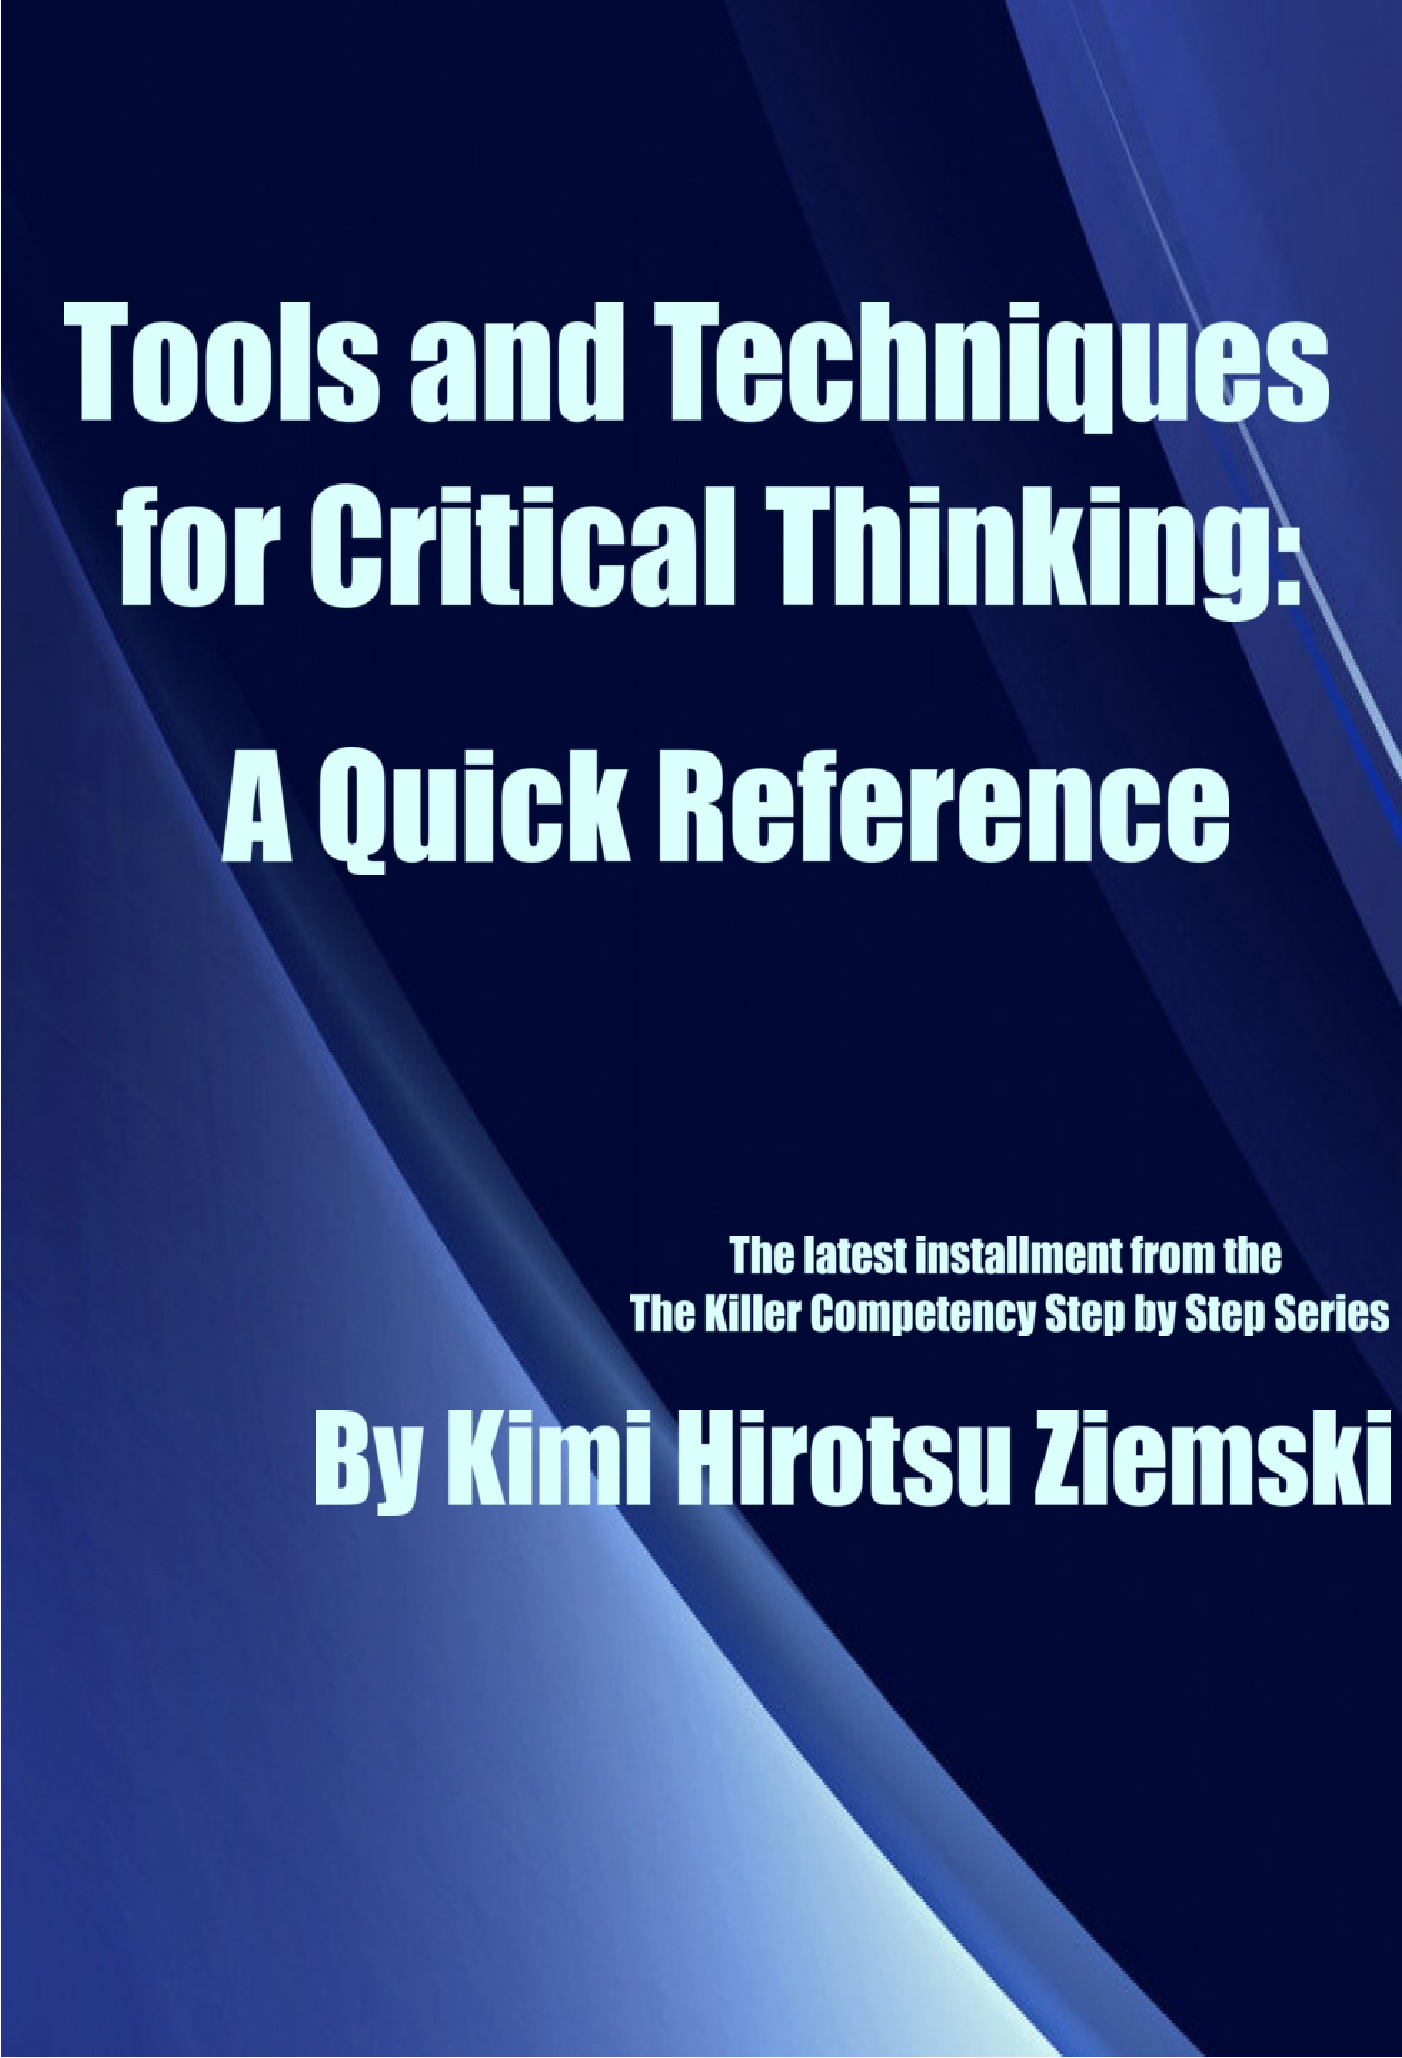 tools and techniques for critical thinking In both the academic and professional worlds, greater emphasis has been placed on critical thinking skills in the united states in recent years with that has come a rash of new educational products, techniques, and software designed to help develop those skills in children, teenagers, and adults alike.